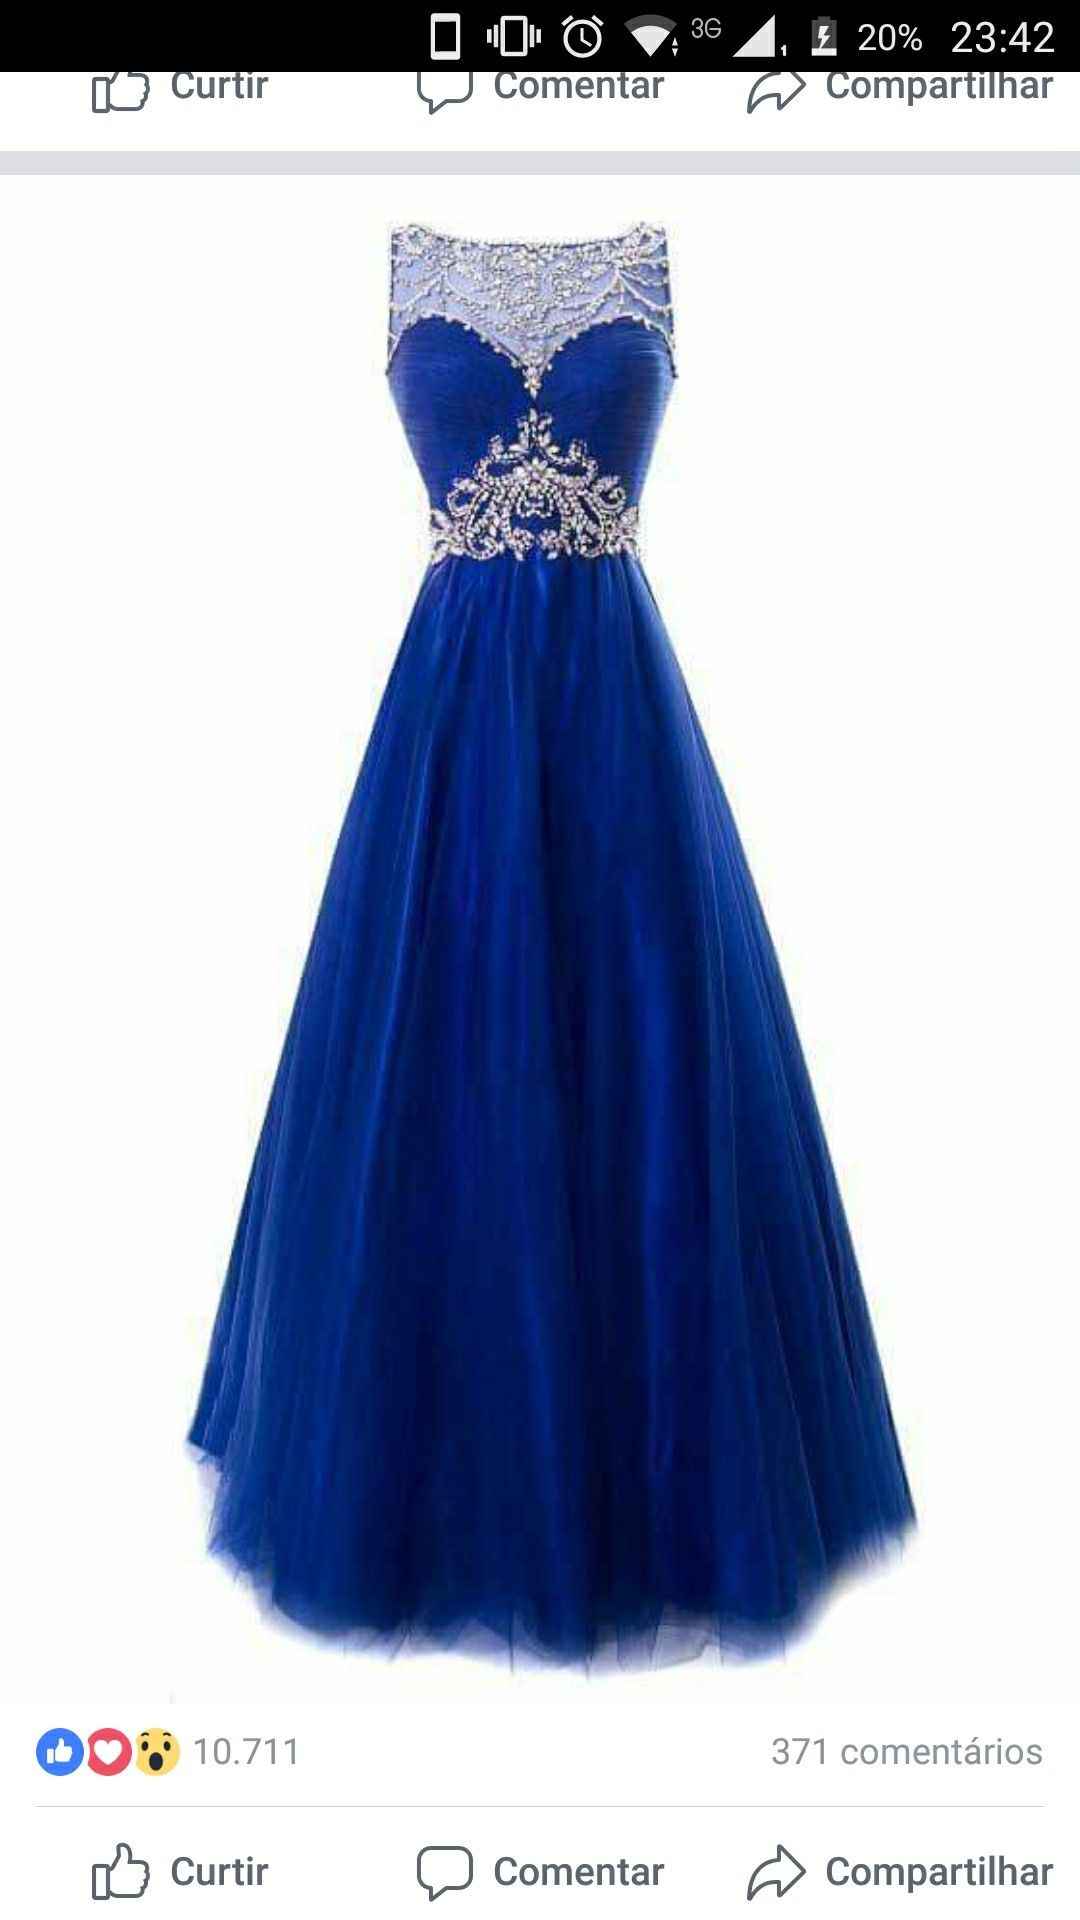 Pin by anissk on anis in pinterest graduation dresses prom